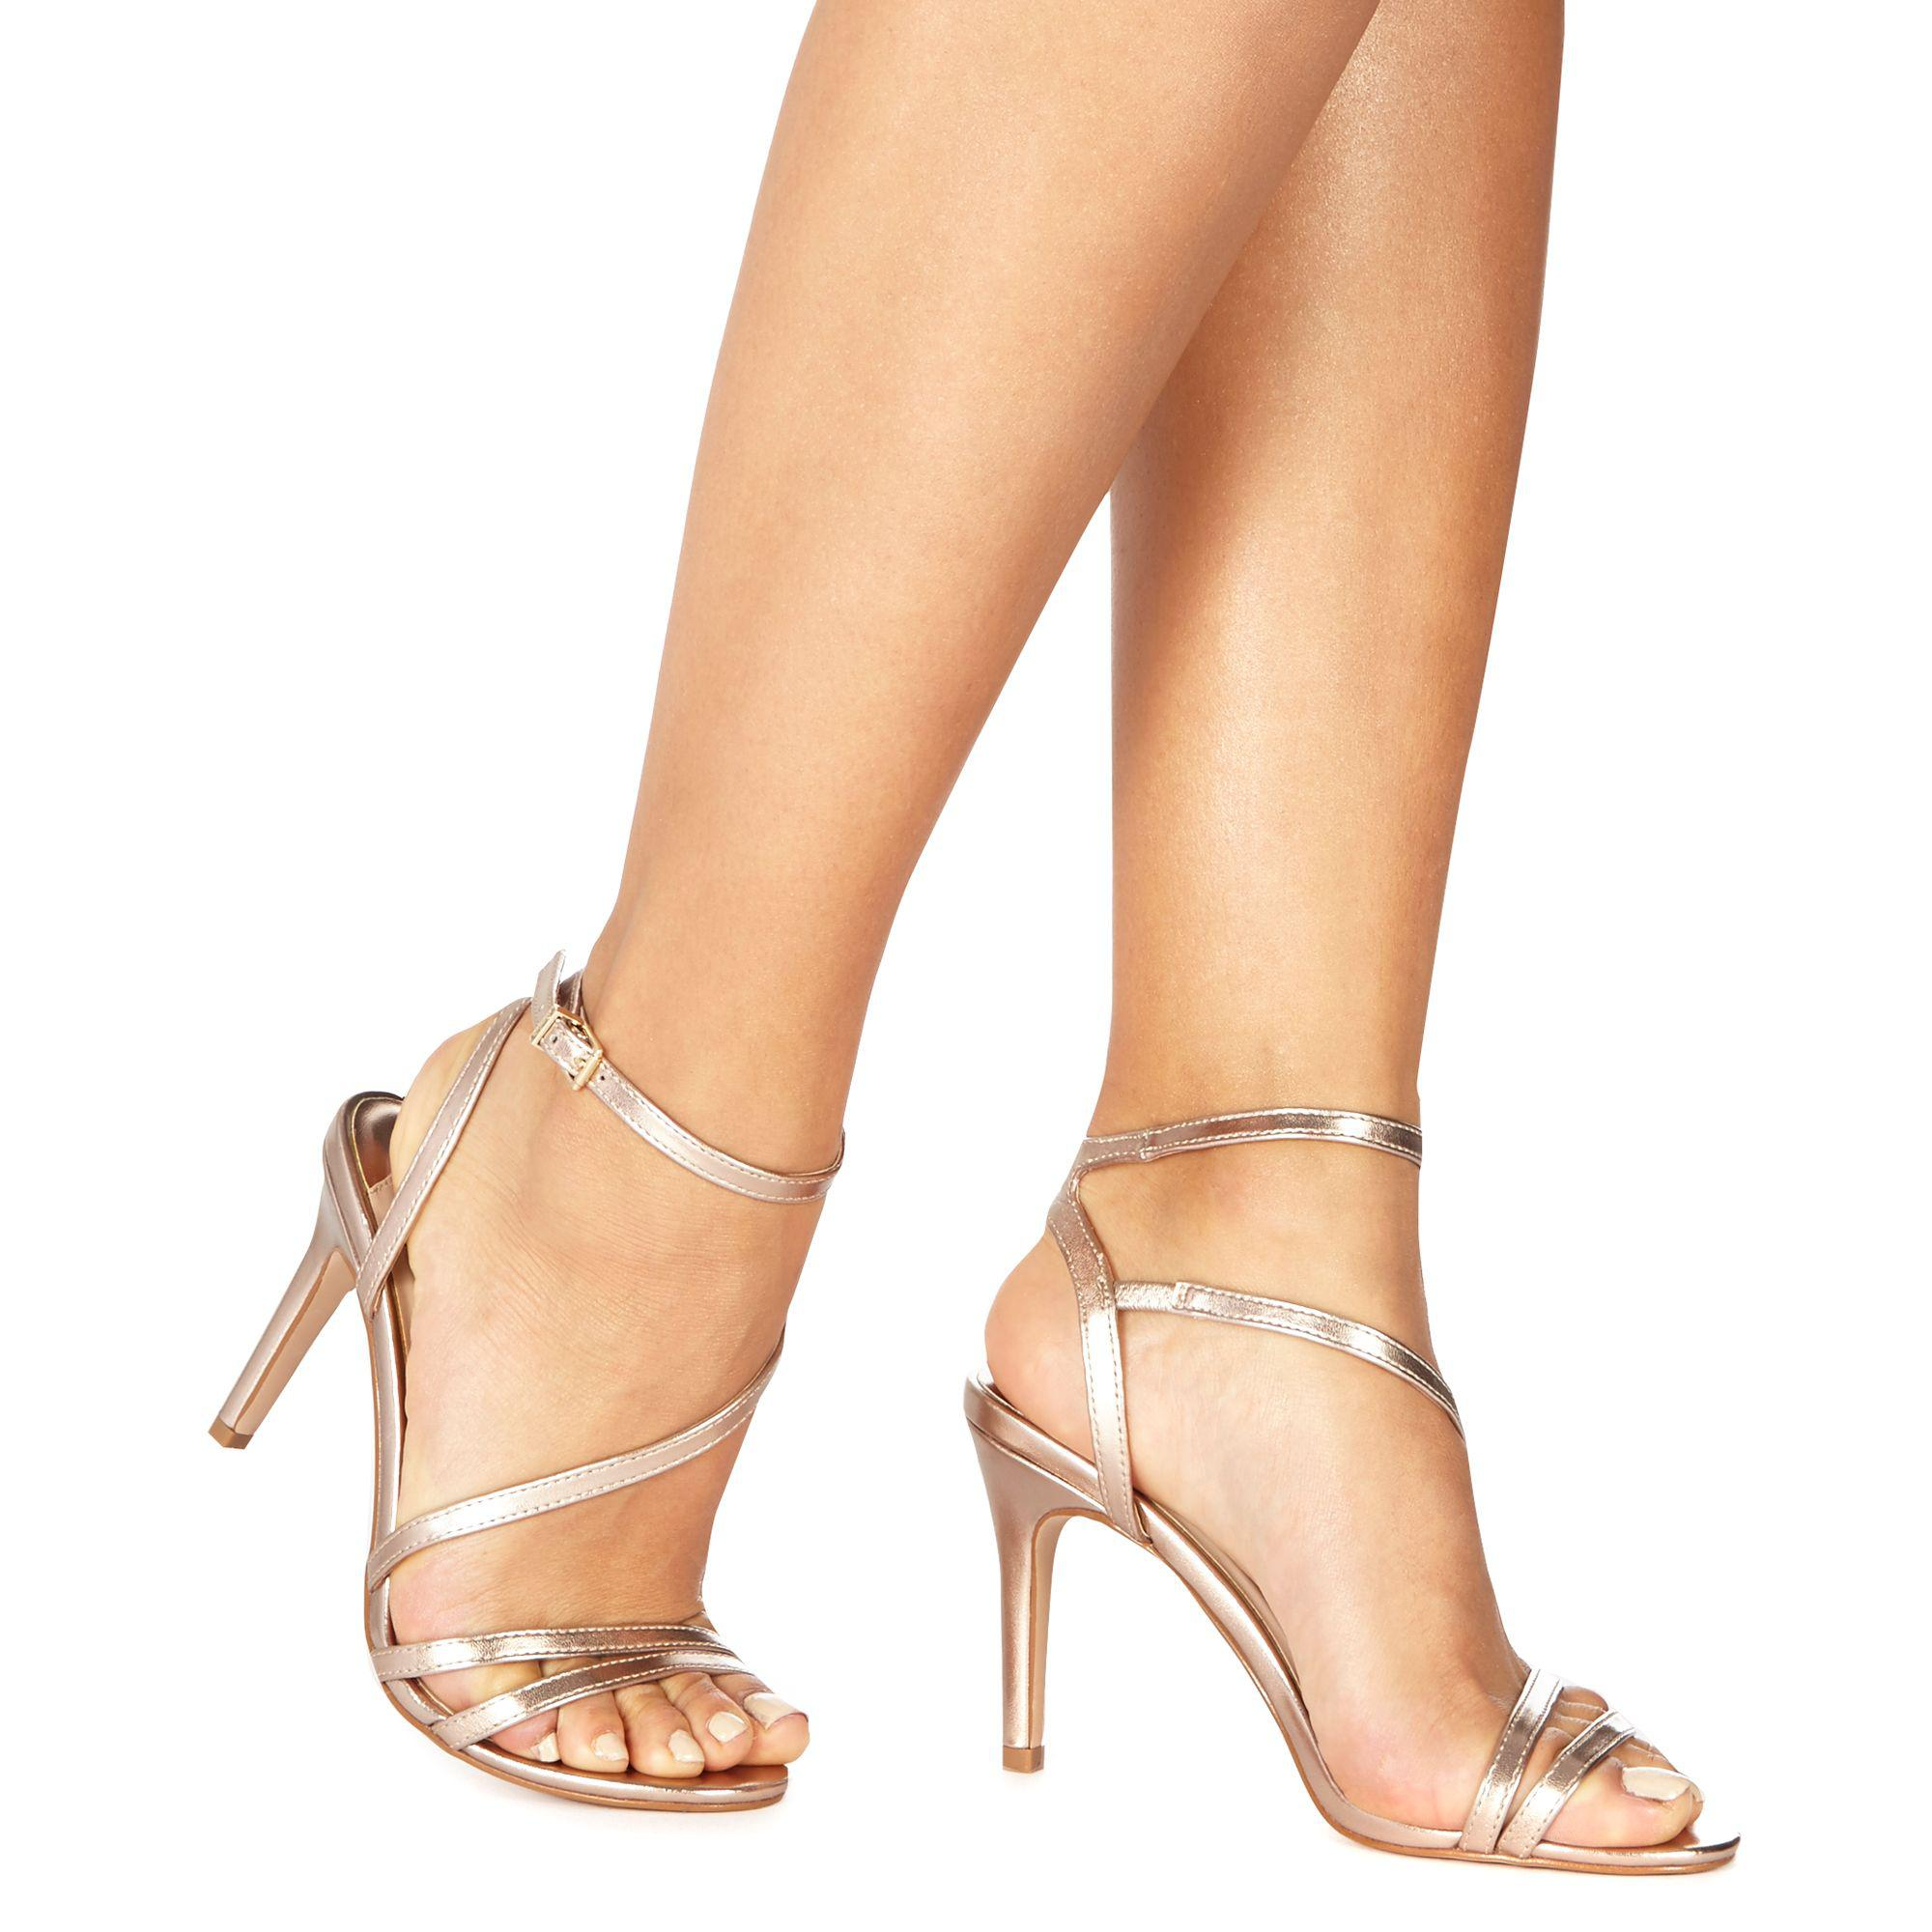 db8e90ab06 Faith Rose Gold 'delly' High Stiletto Heel Ankle Strap Sandals in ...